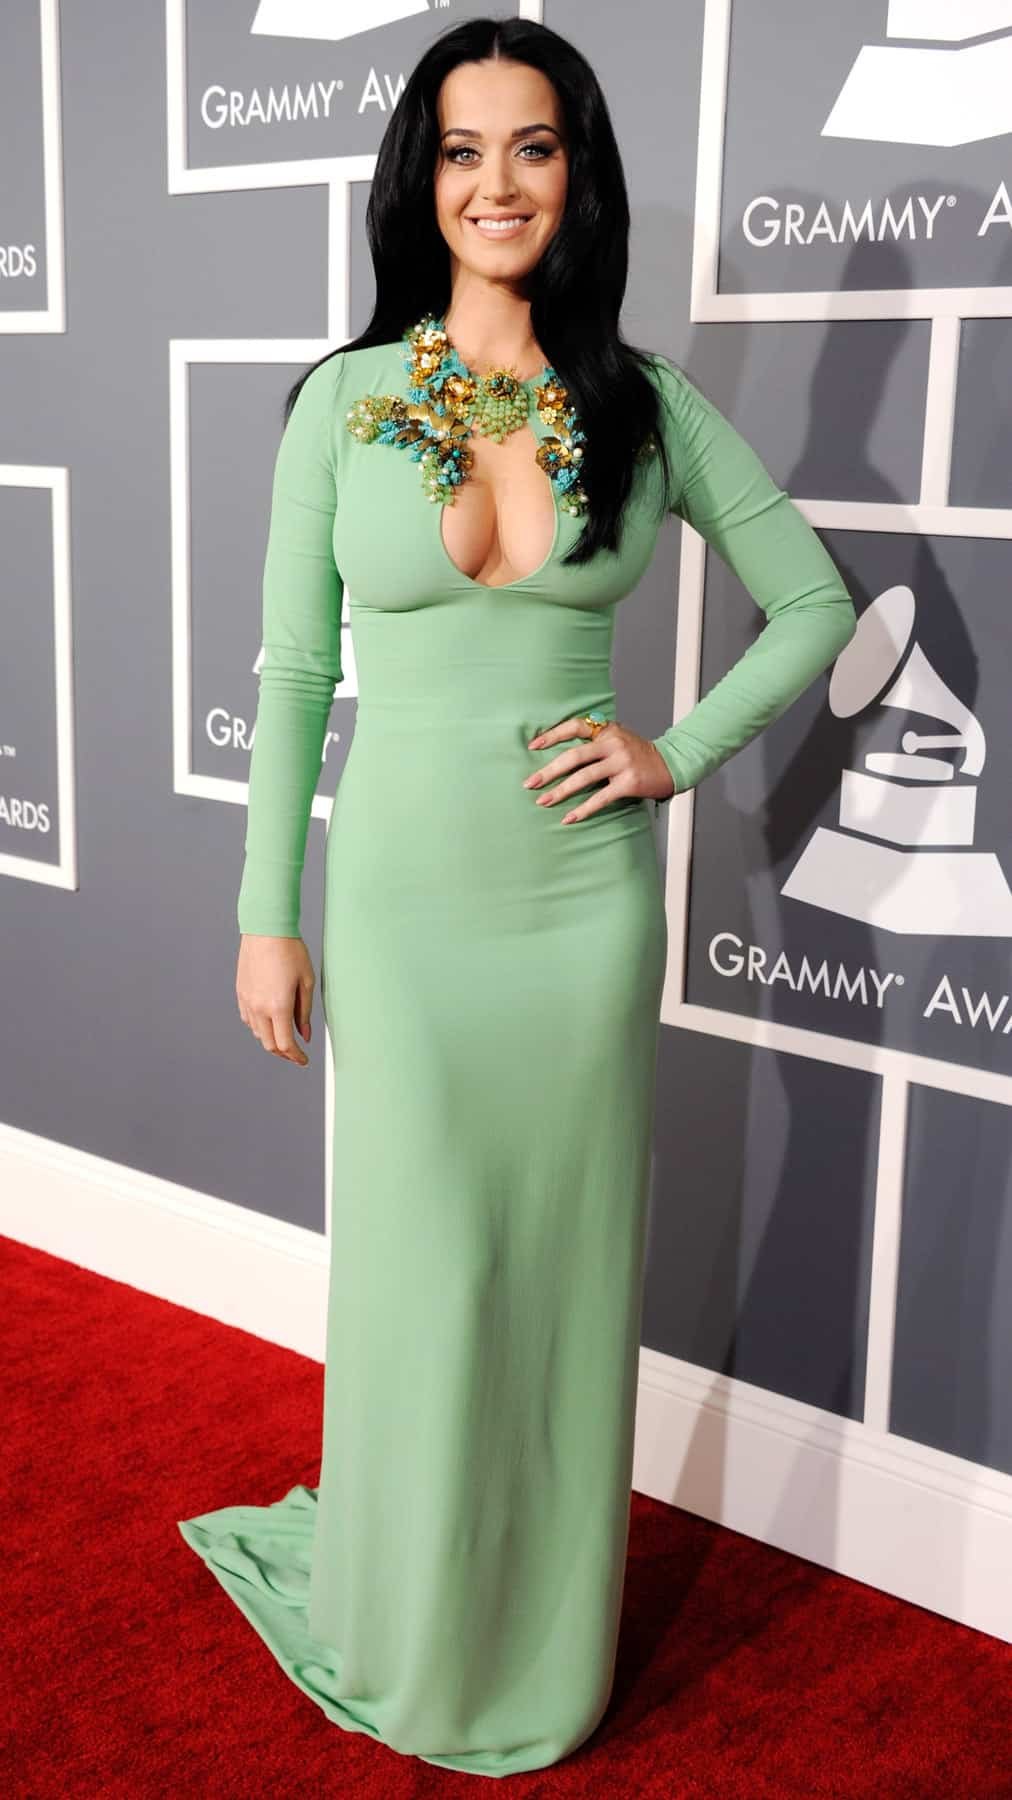 katy-perry-grammy-2013-red-carpet